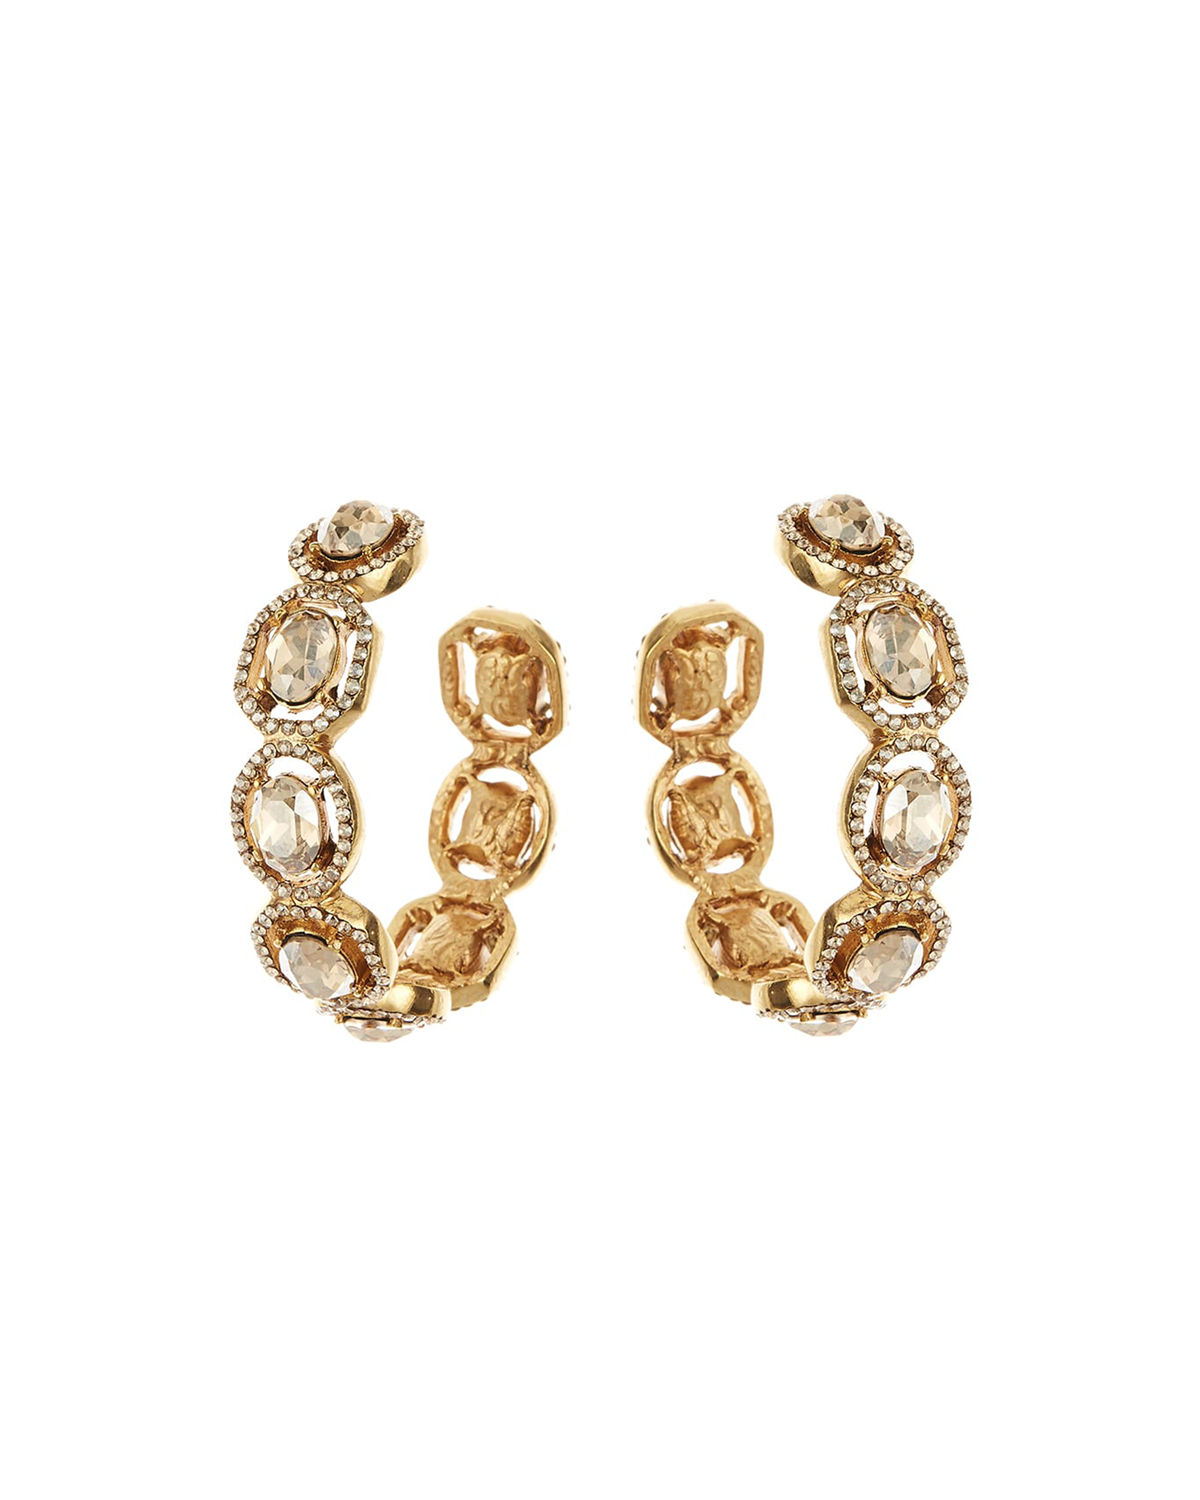 Oscar De La Renta Accessories JEWELED HOOP EARRINGS